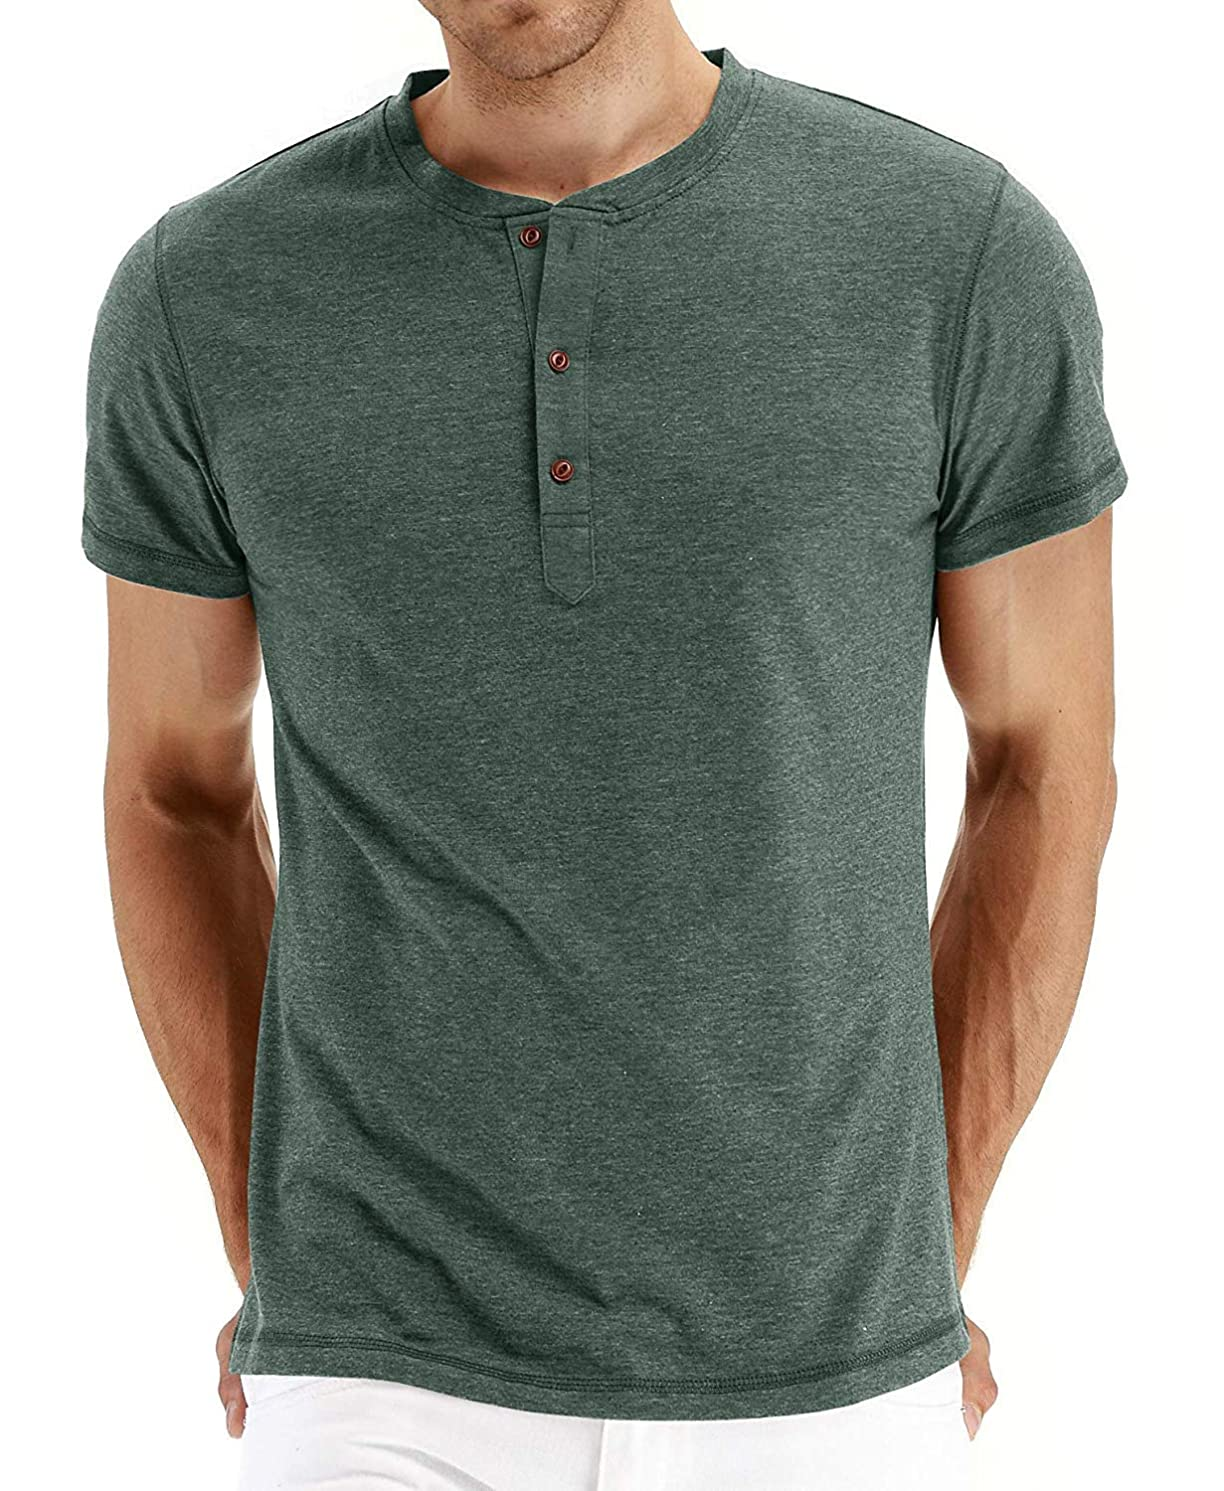 SALNIER Mens Casual Henley Shirt Slim Fit T Shirts Cotton Shirts Short Sleeve